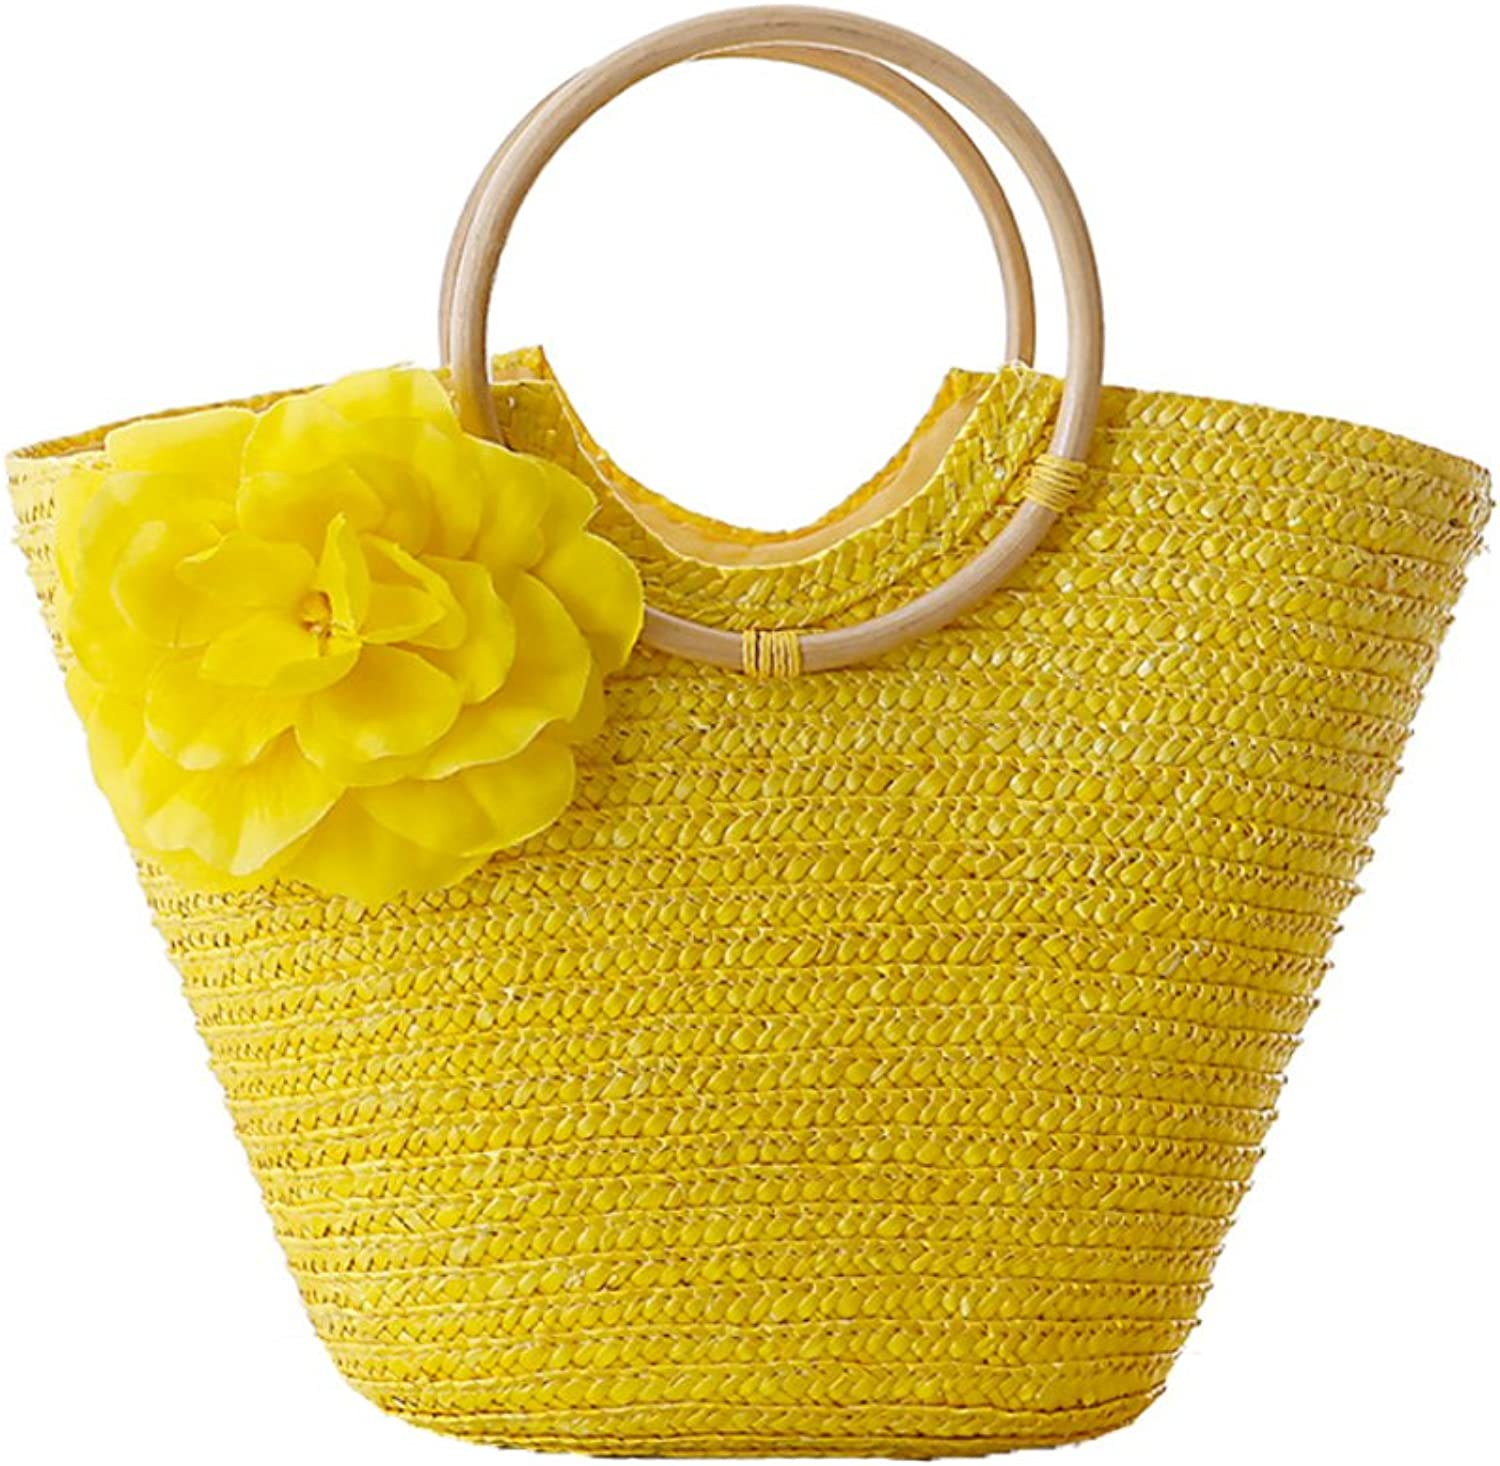 Womens Woven Handbag with Flowers by Coseey